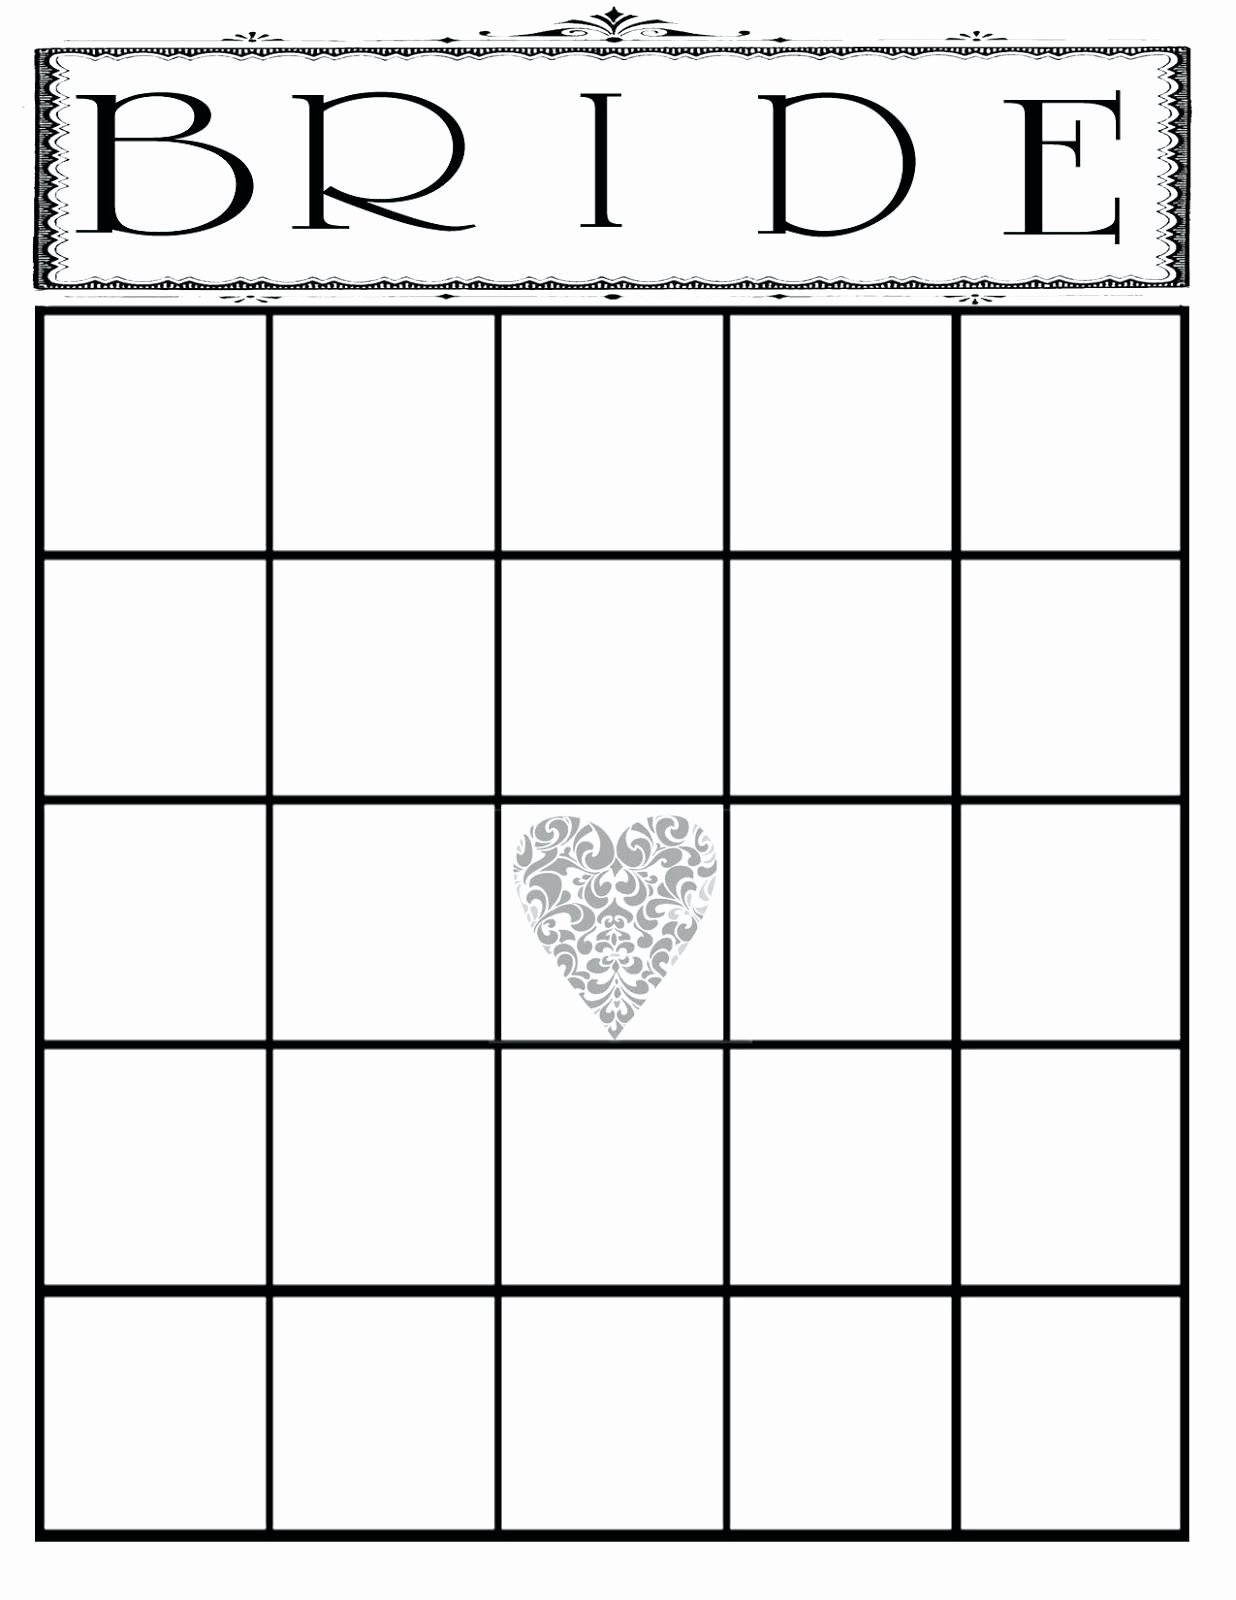 Printable Printable Bridal Shower Bingo Template Blank